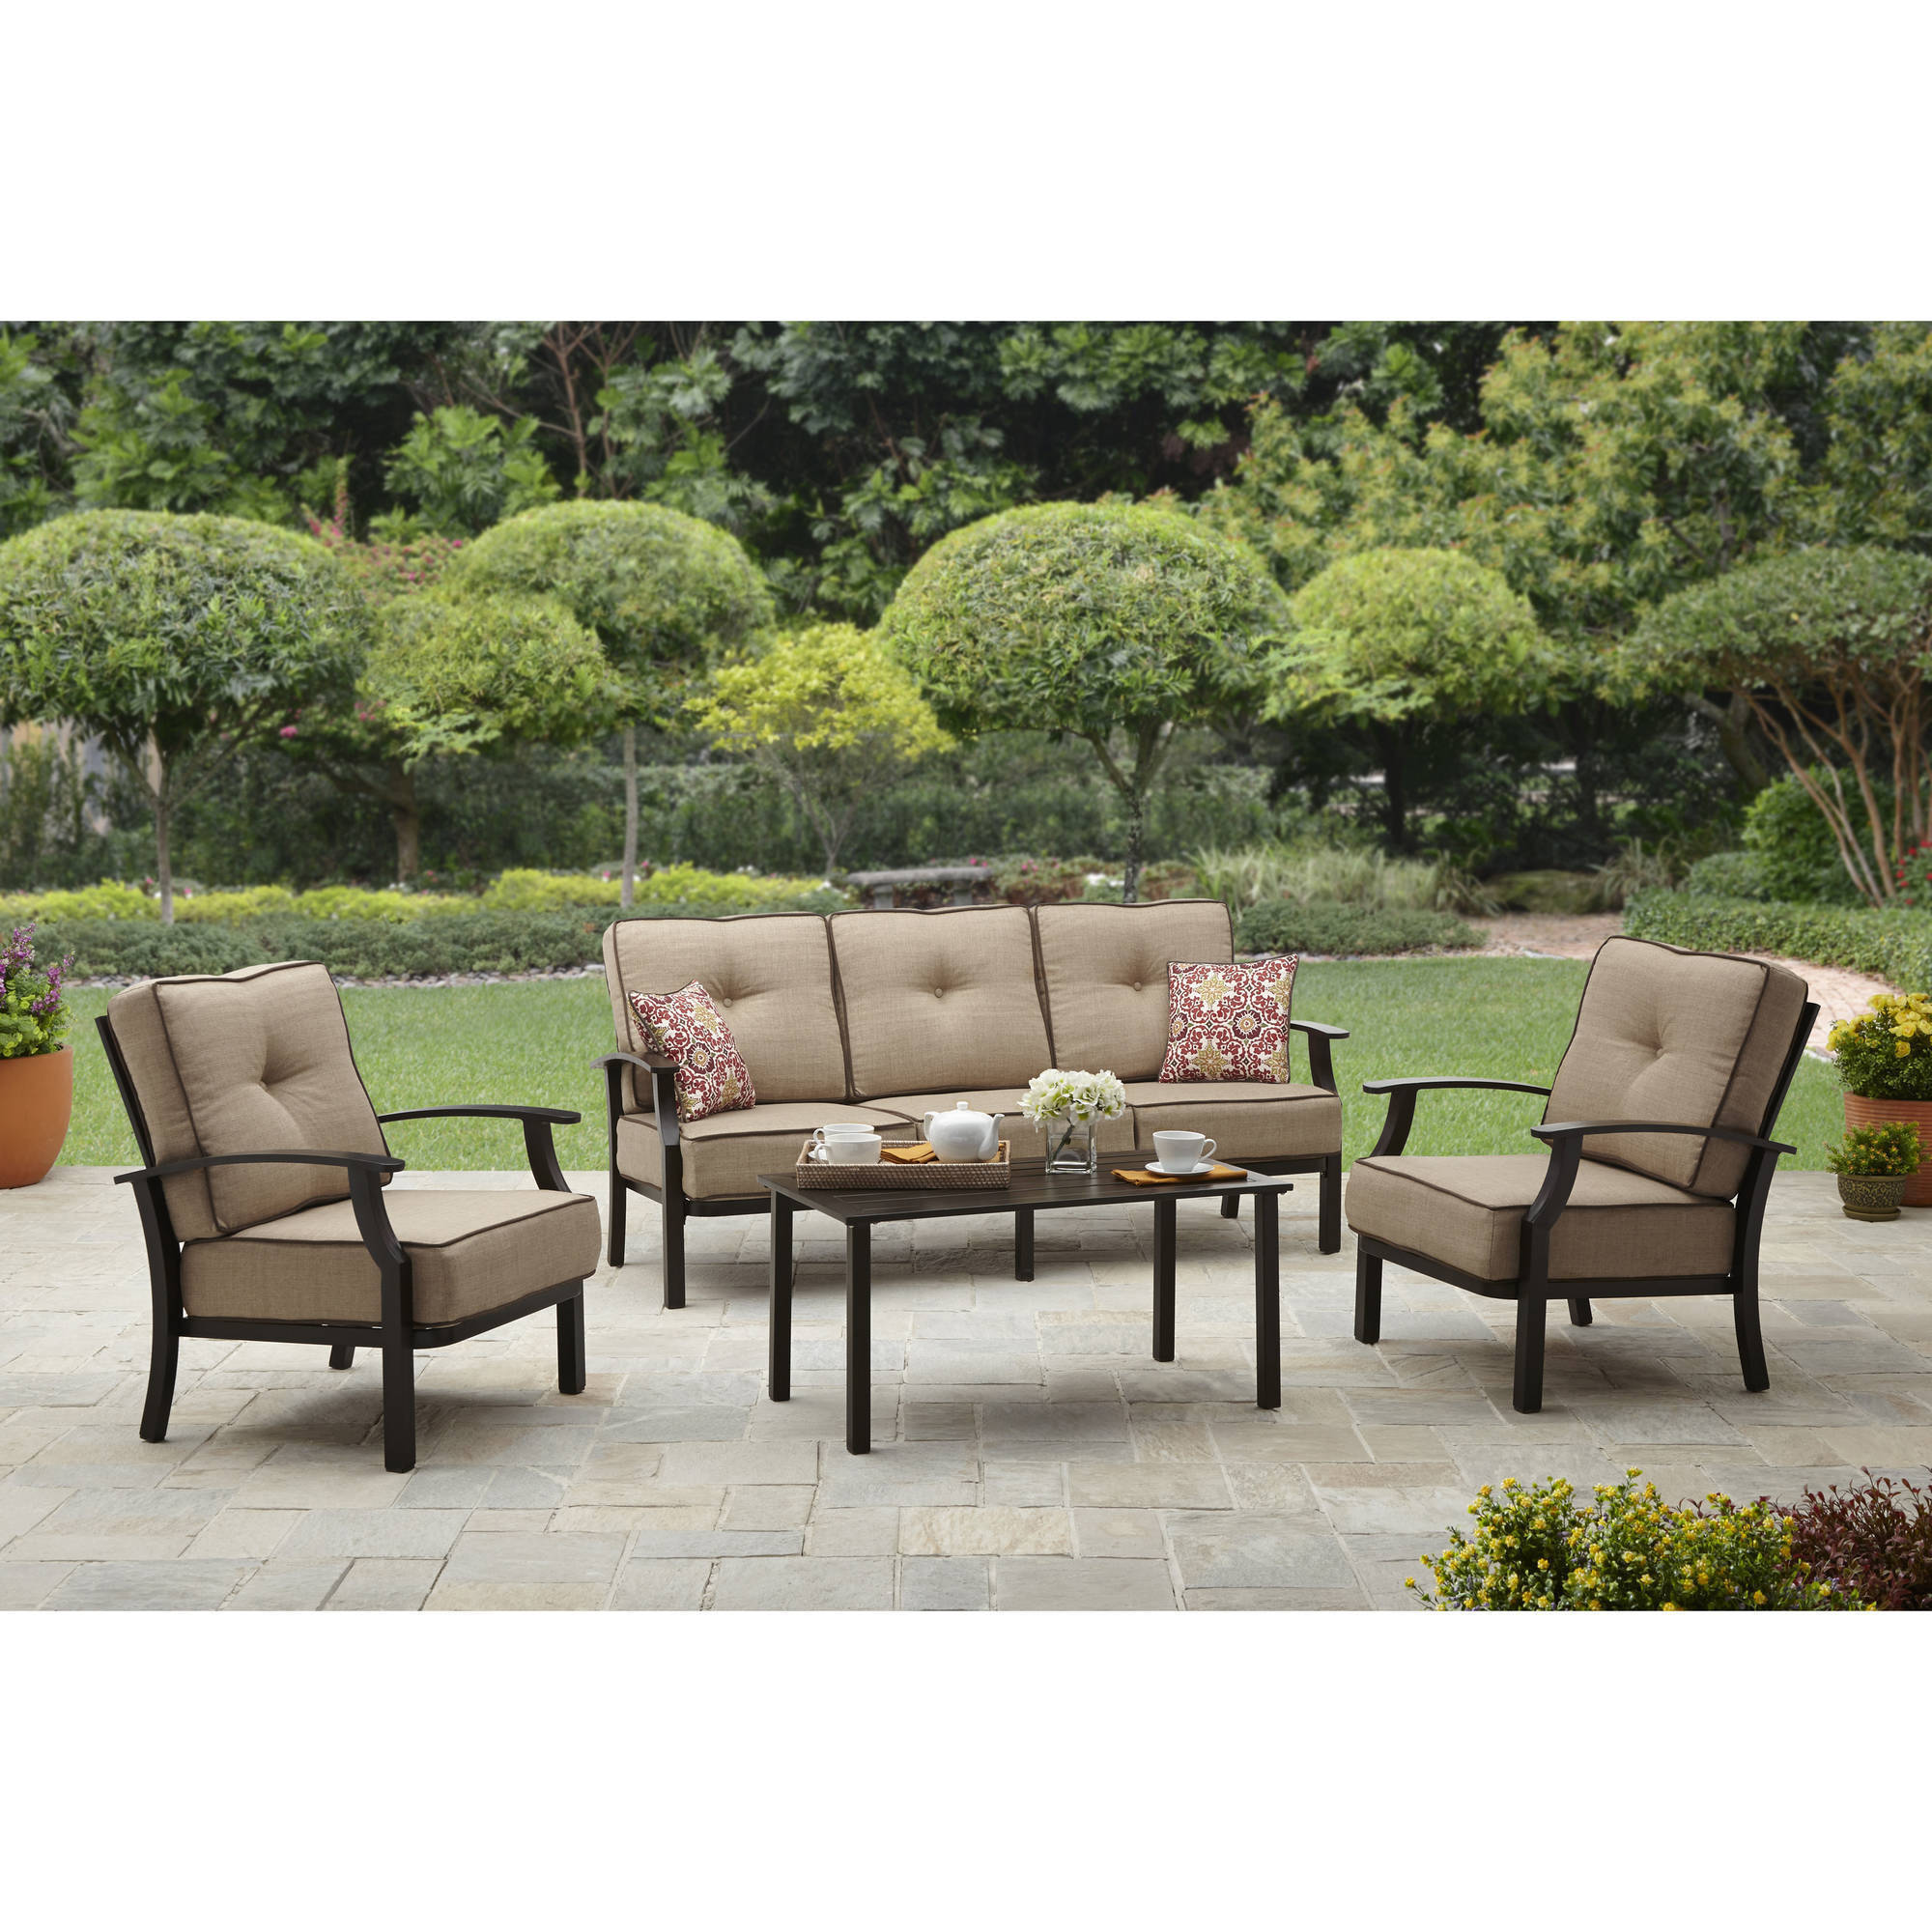 Genial Better Homes And Gardens Carter Hills Outdoor Conversation Set   Walmart.com